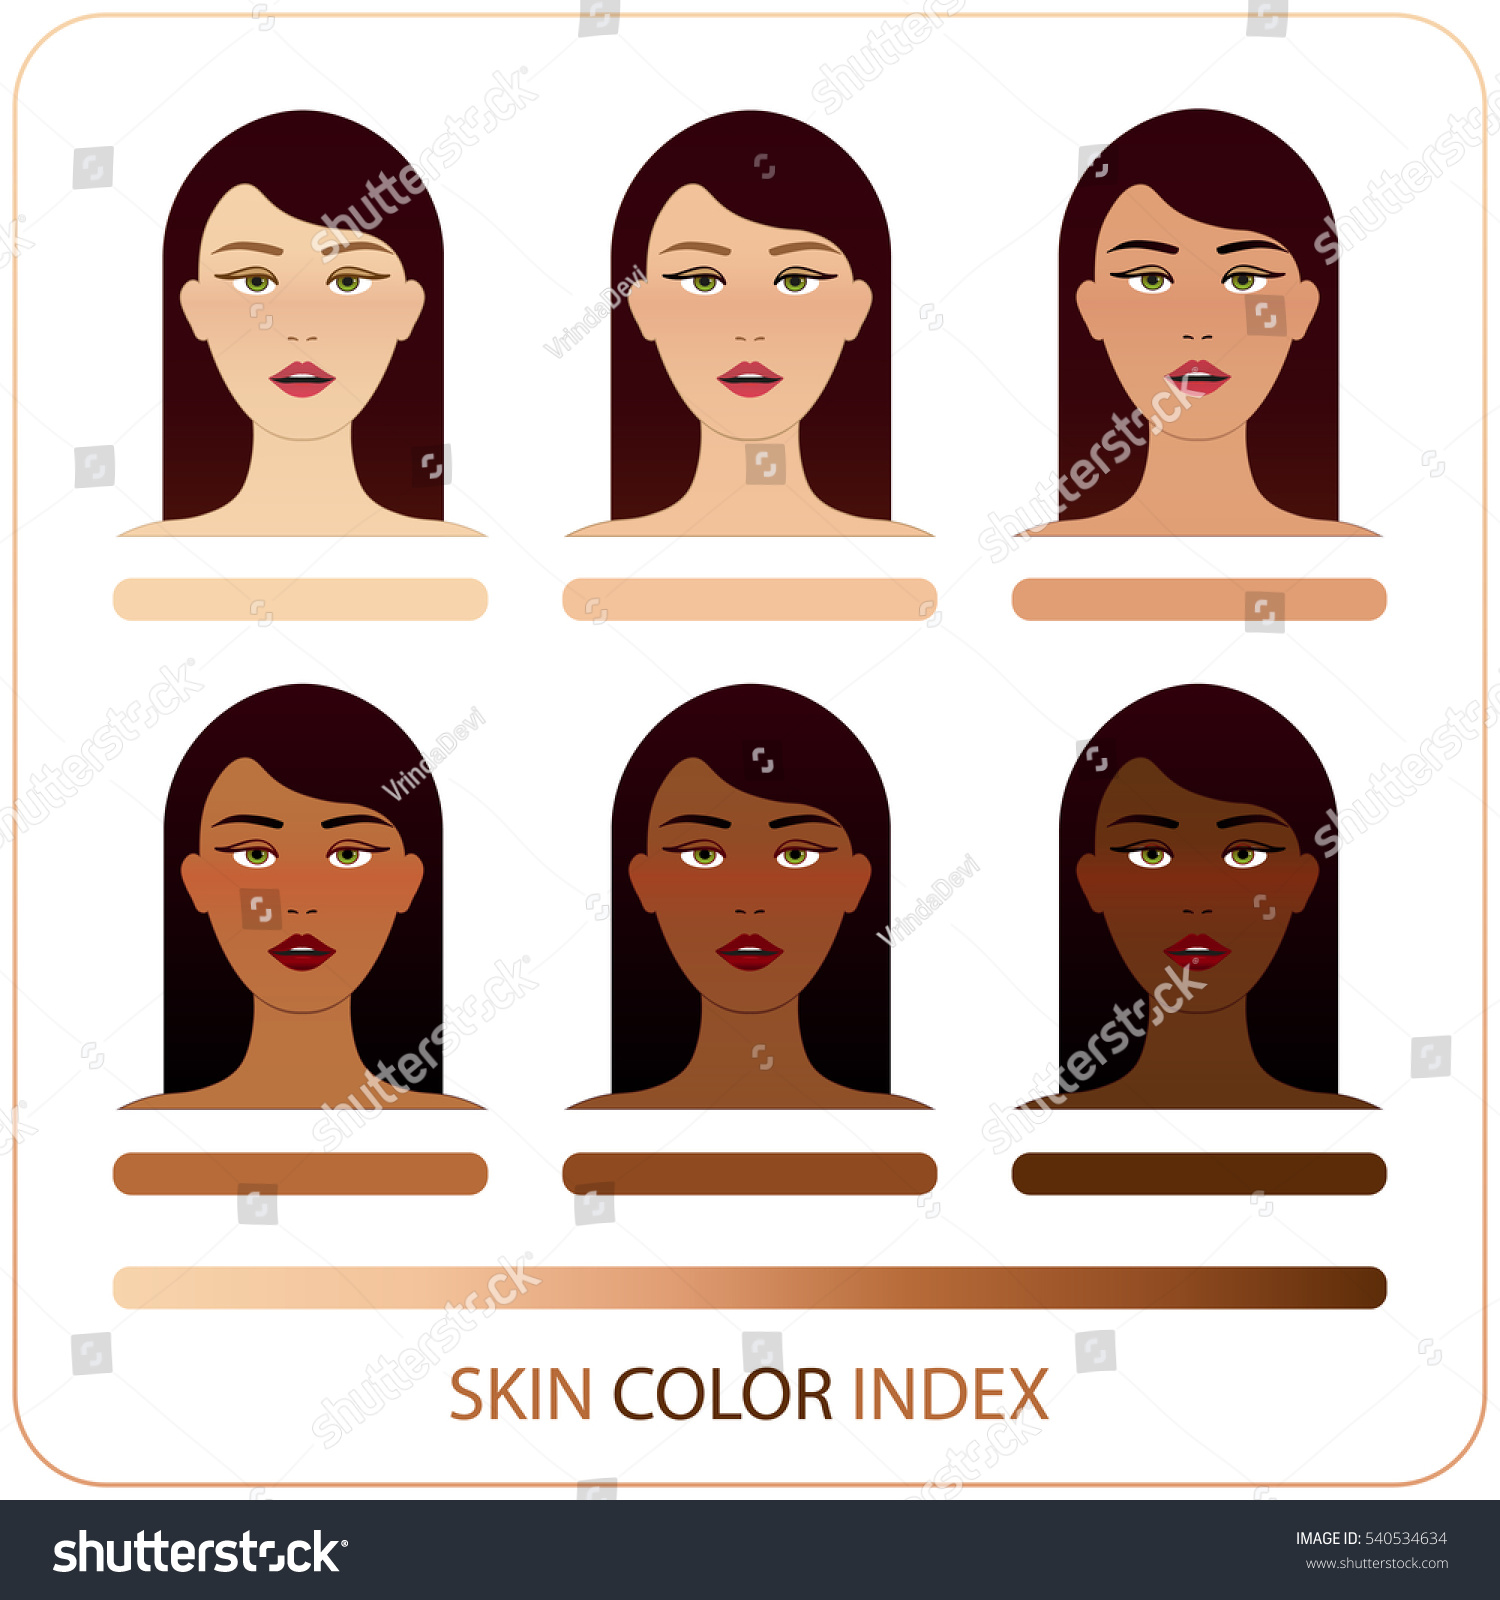 Skin color index infographic vector brunette stock vector skin color index infographic in vector brunette woman face with different color skin chart of nvjuhfo Choice Image